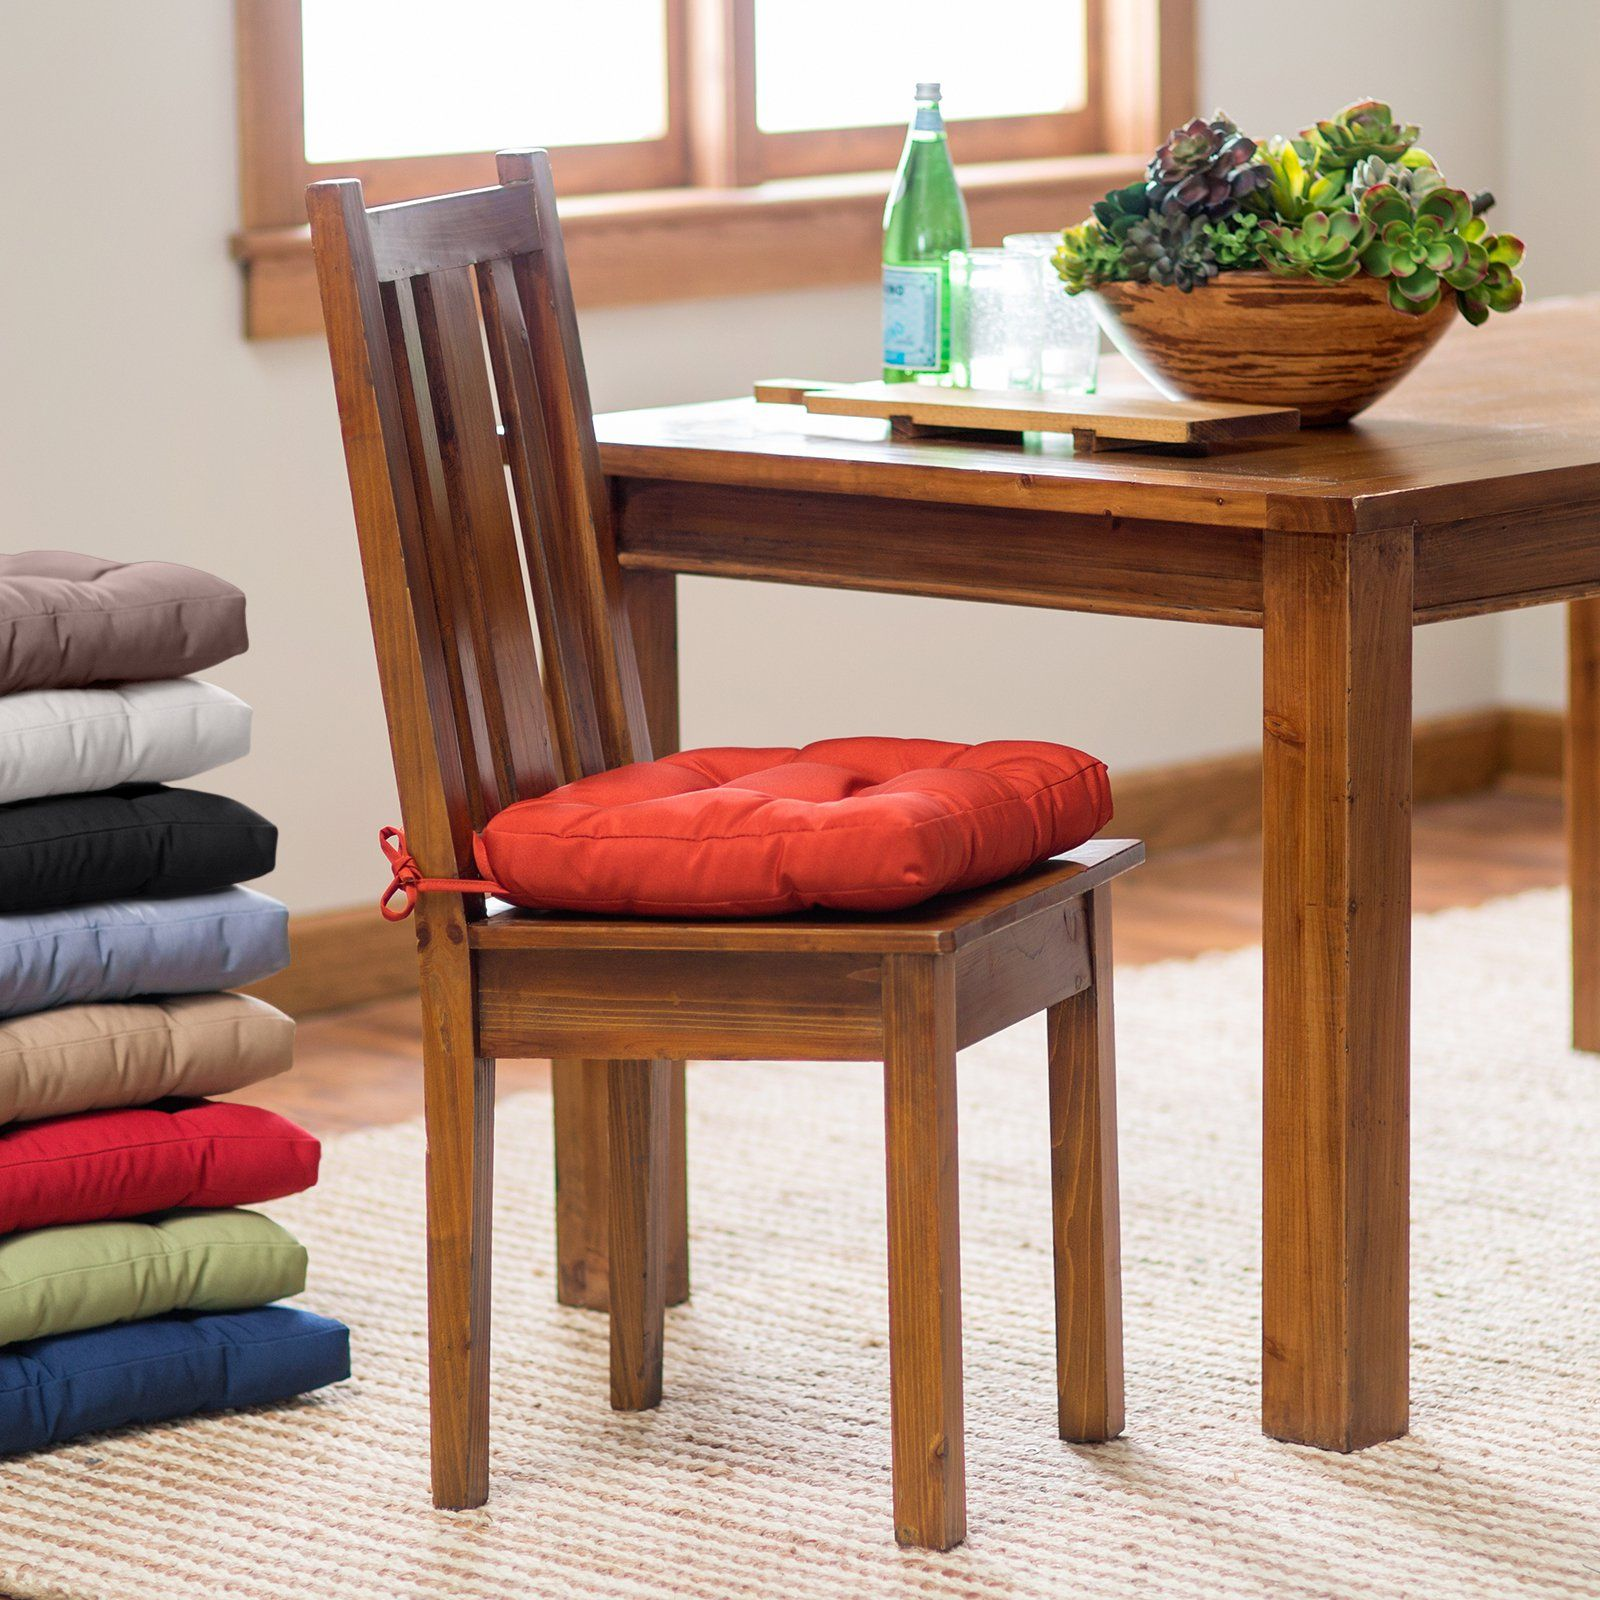 How To Find The Right Dining Room Chair Cushions Kitchen Chair